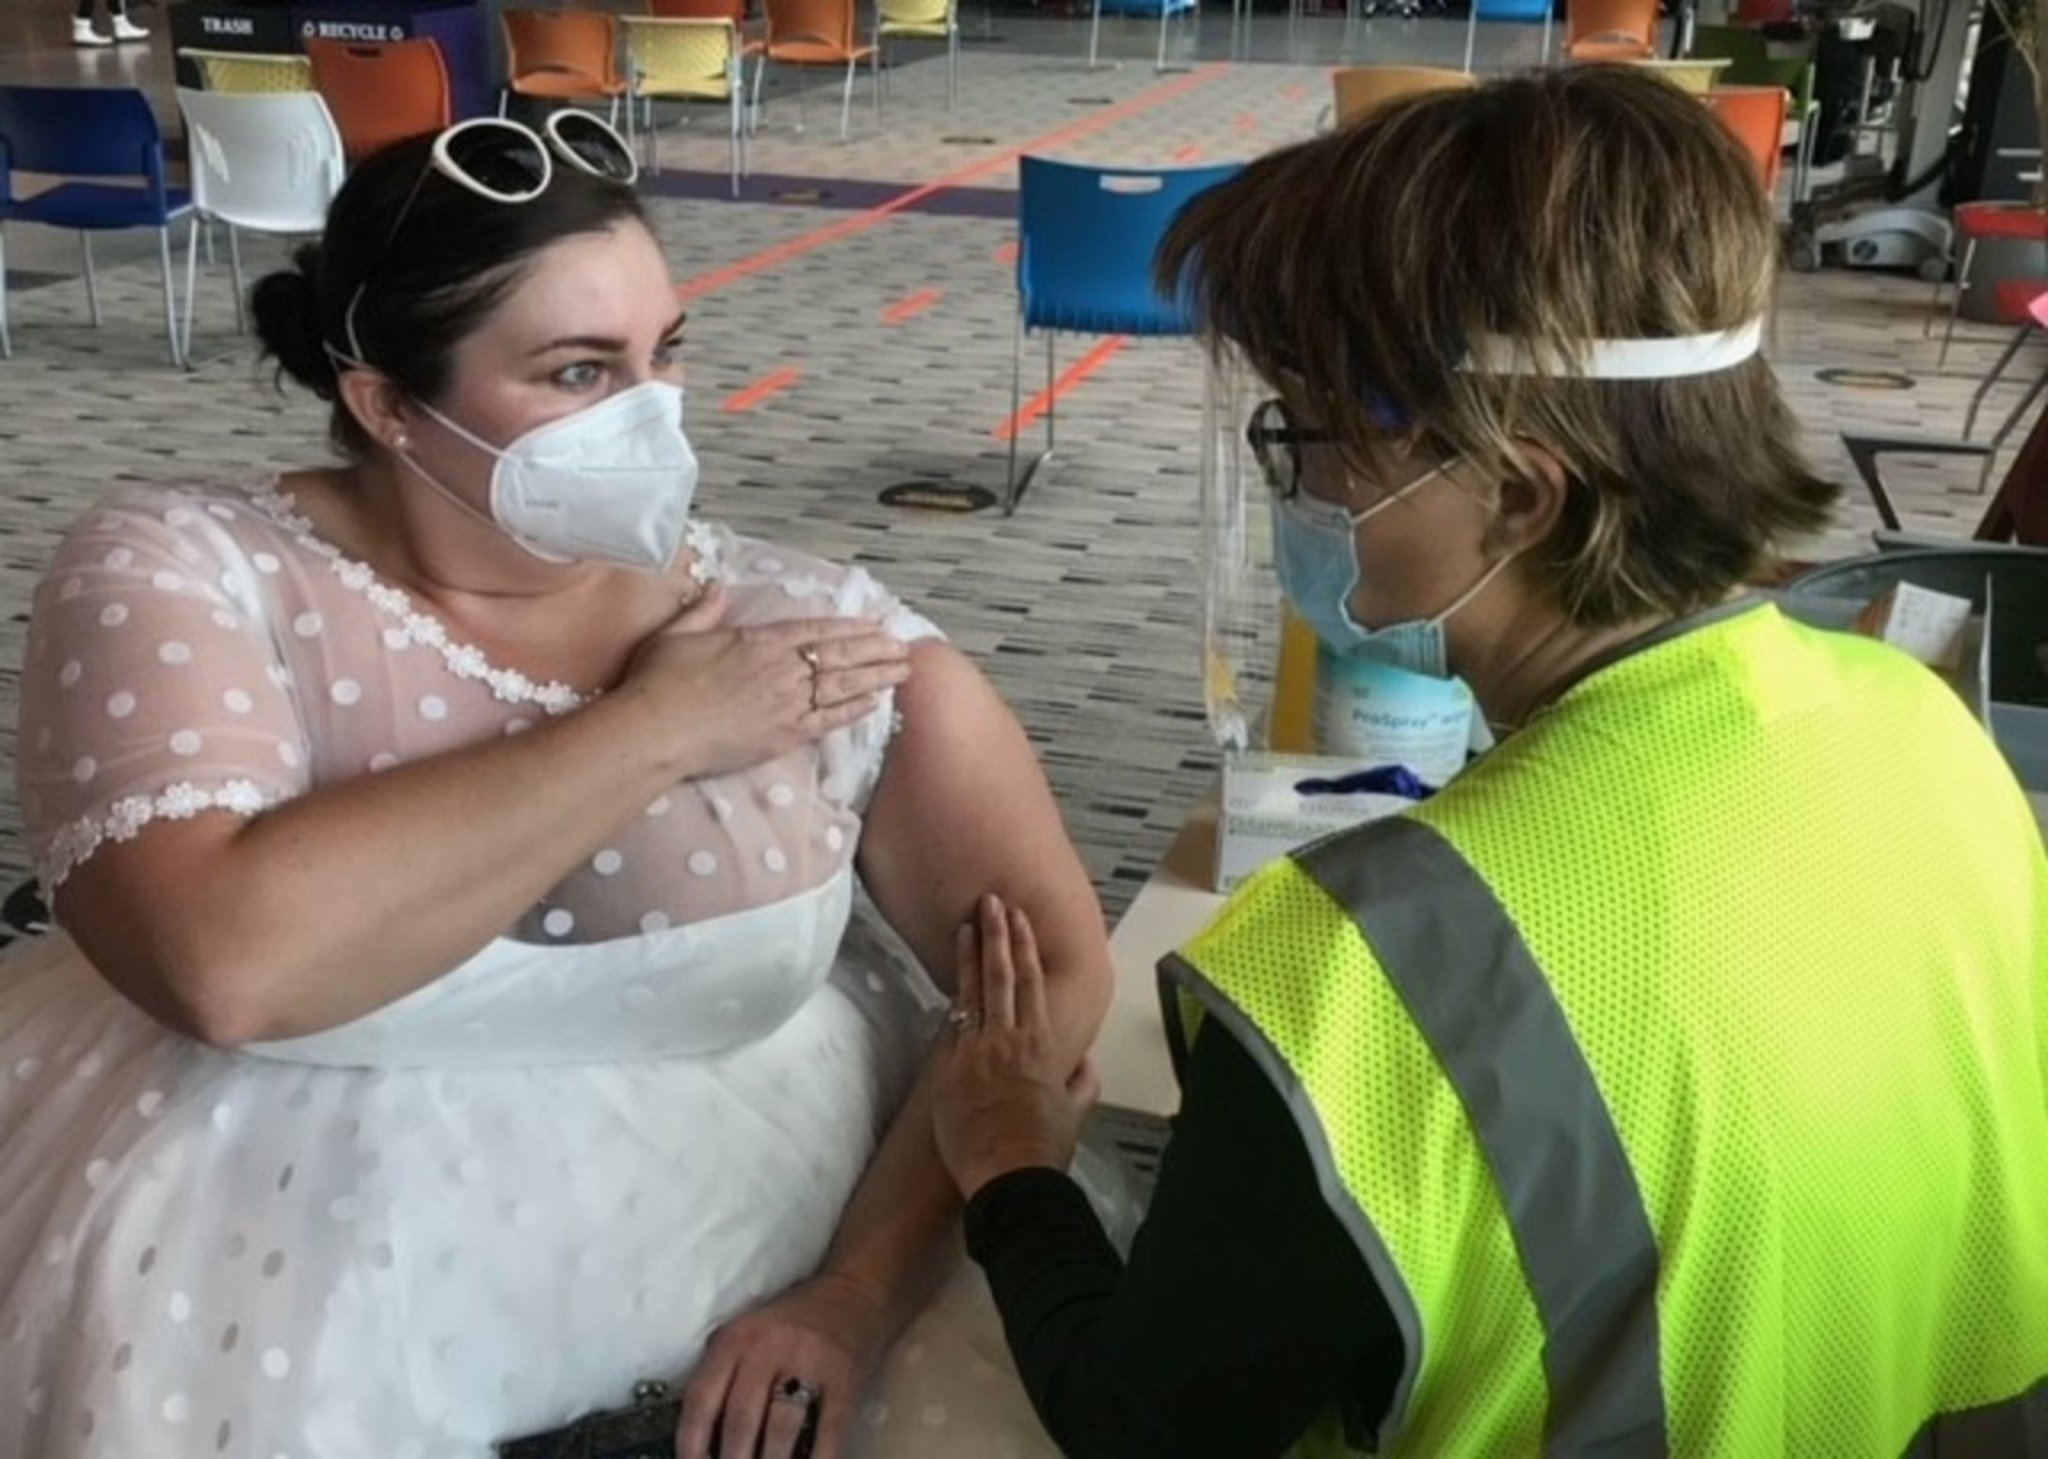 Bride Who Canceled Wedding Due to COVID-19 Wears Her Dress to Vaccine Appointment